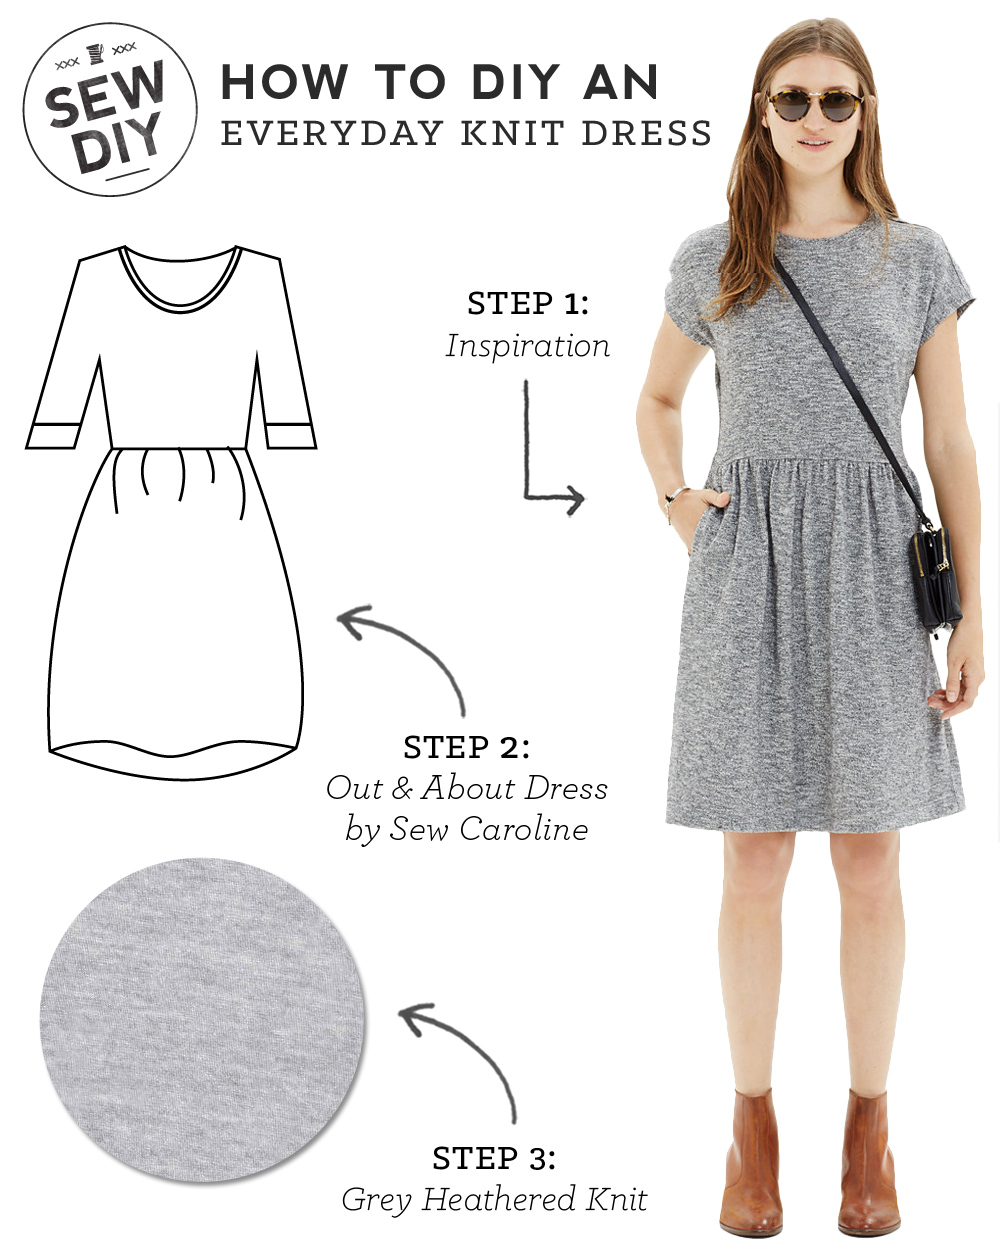 Diy Outfit Everyday Knit Dress Sew Diy